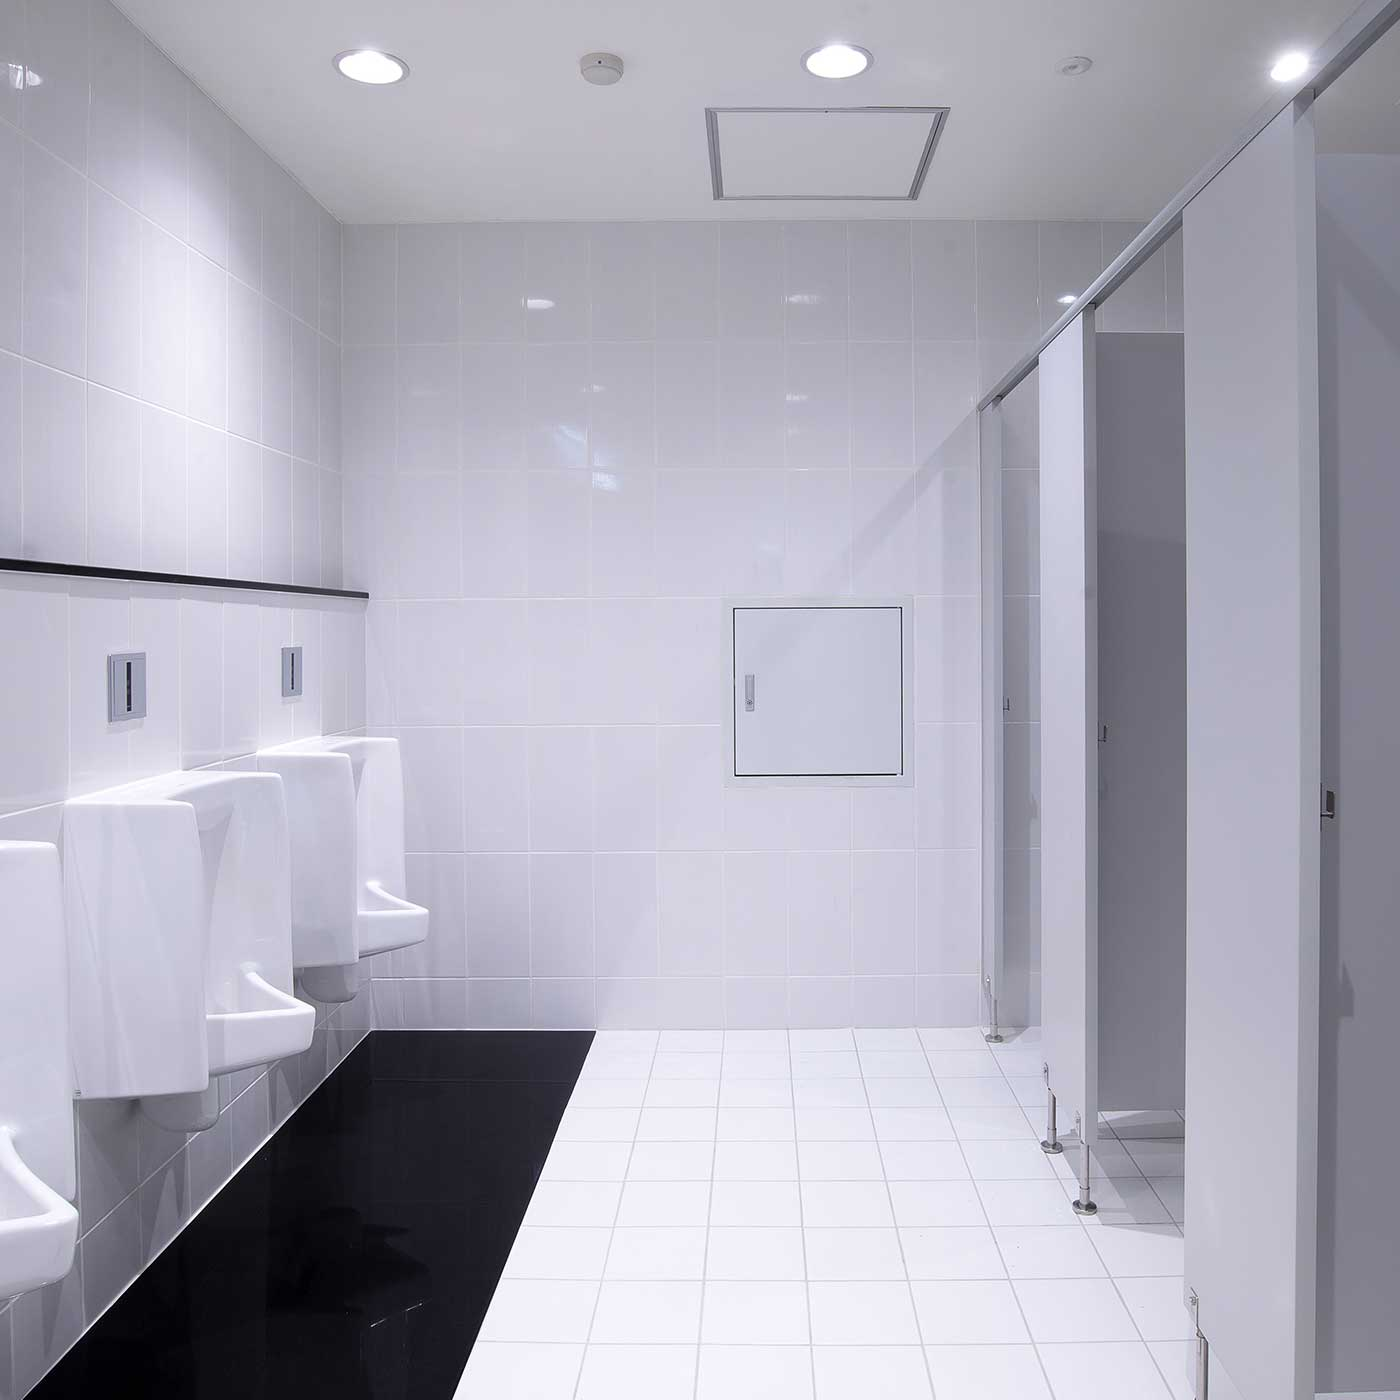 washroom cleanliness